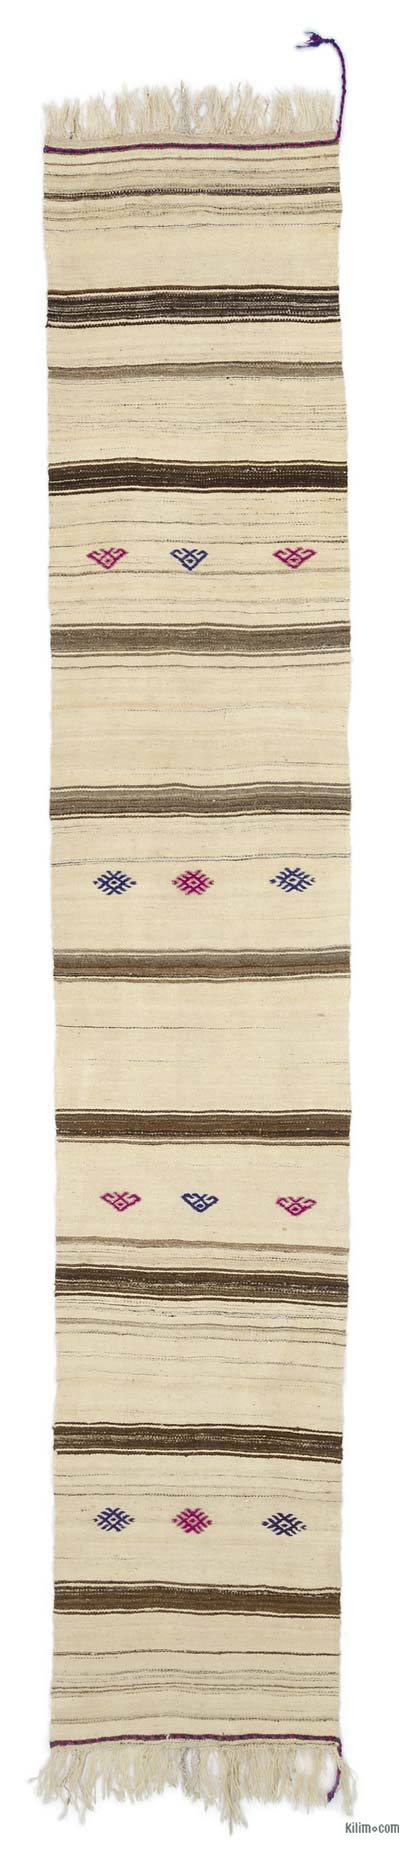 "Vintage Turkish Kilim Runner - 2'3"" x 12'2"" (27 in. x 146 in.)"